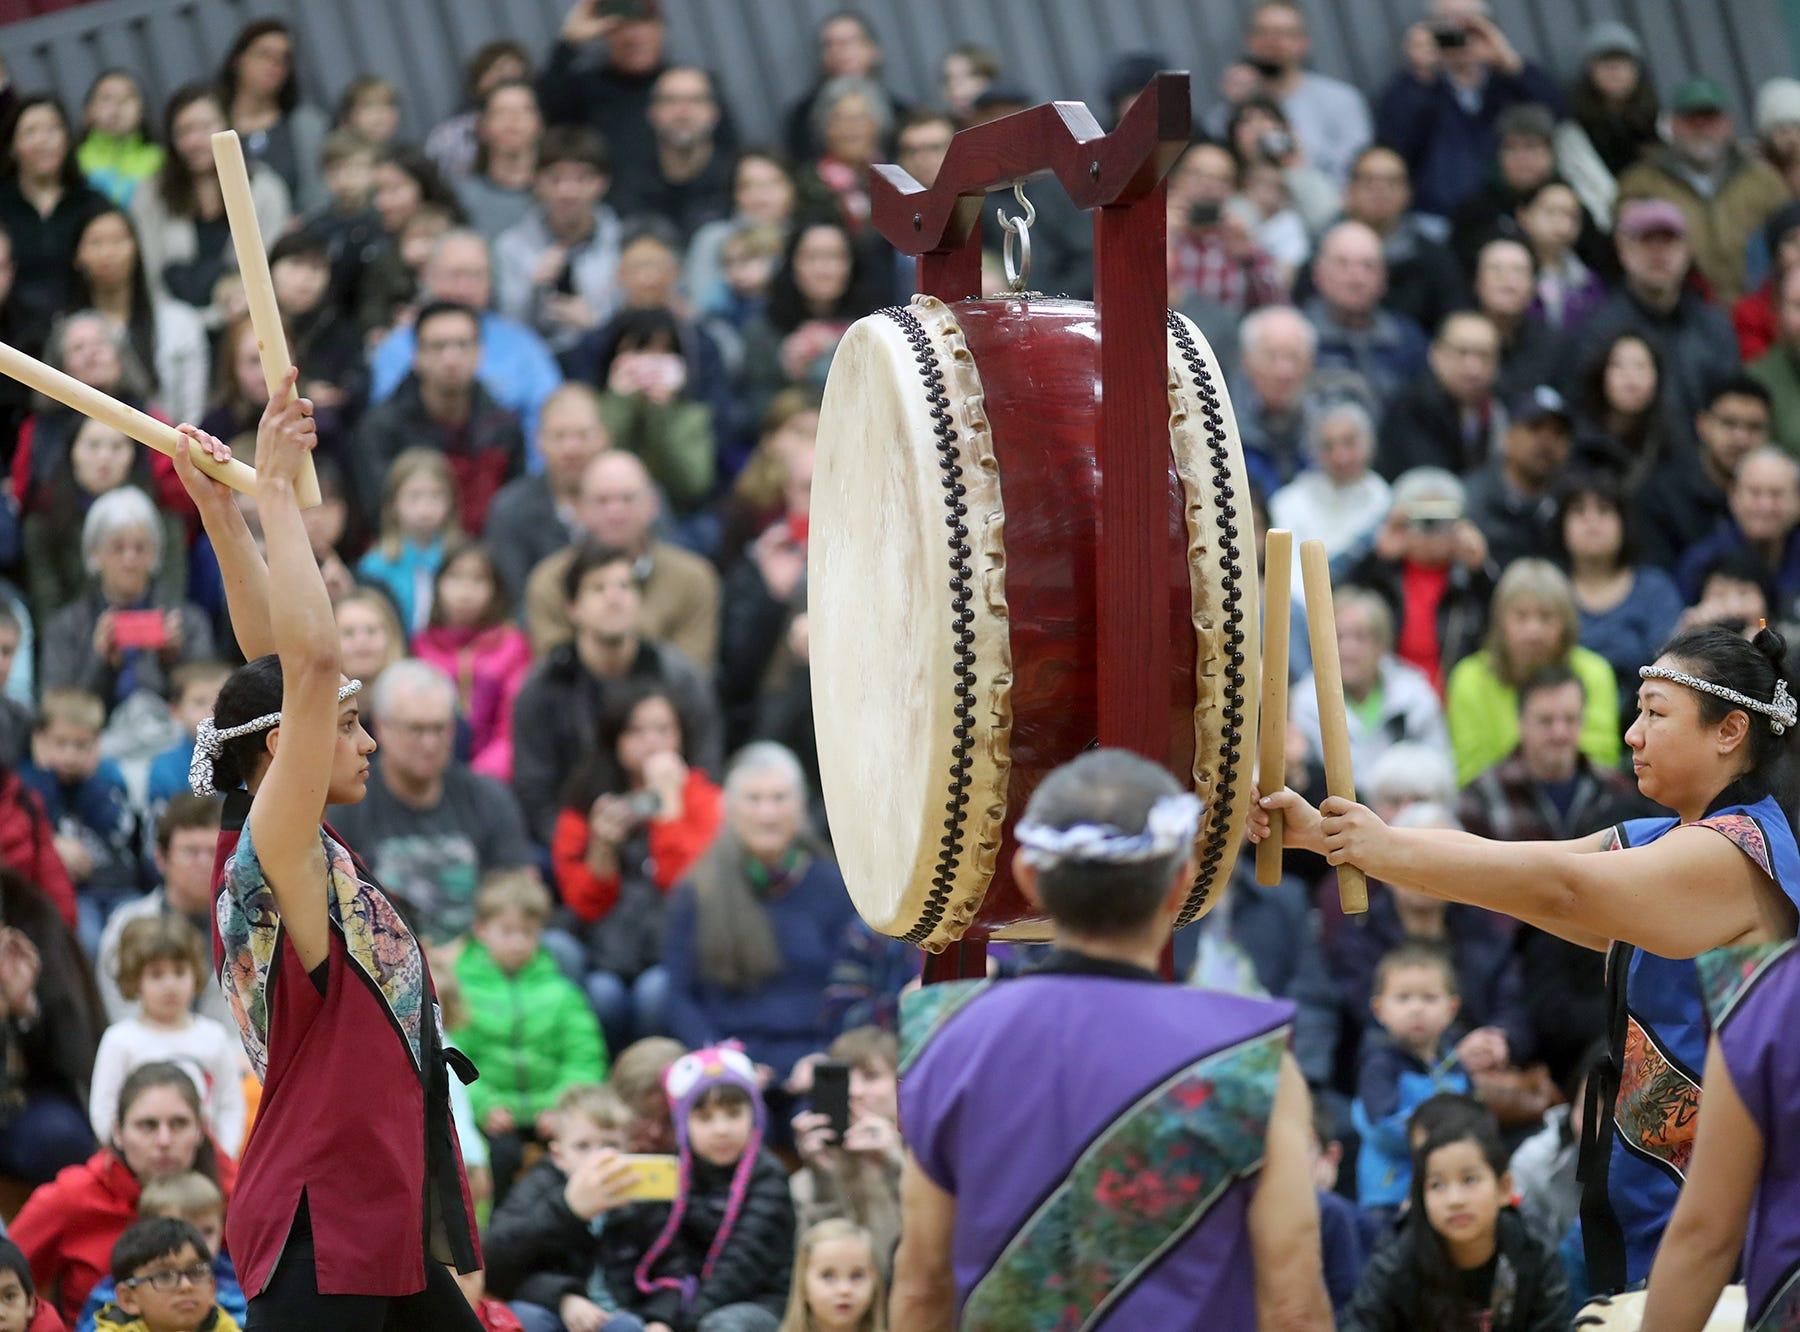 The 30th anniversary of Bainbridge Island's Japanese-American Mochi Tsuki celebration was held at an new location at the Woodward Middle School on Saturday, January, 5, 2019. Mochi Tsuki is a traditional Japanese New Year's tradition of steaming rice and pounding it into a rice cake. The Seattle Kokon Taiko drummers perform to a capacity crowd in the gym.